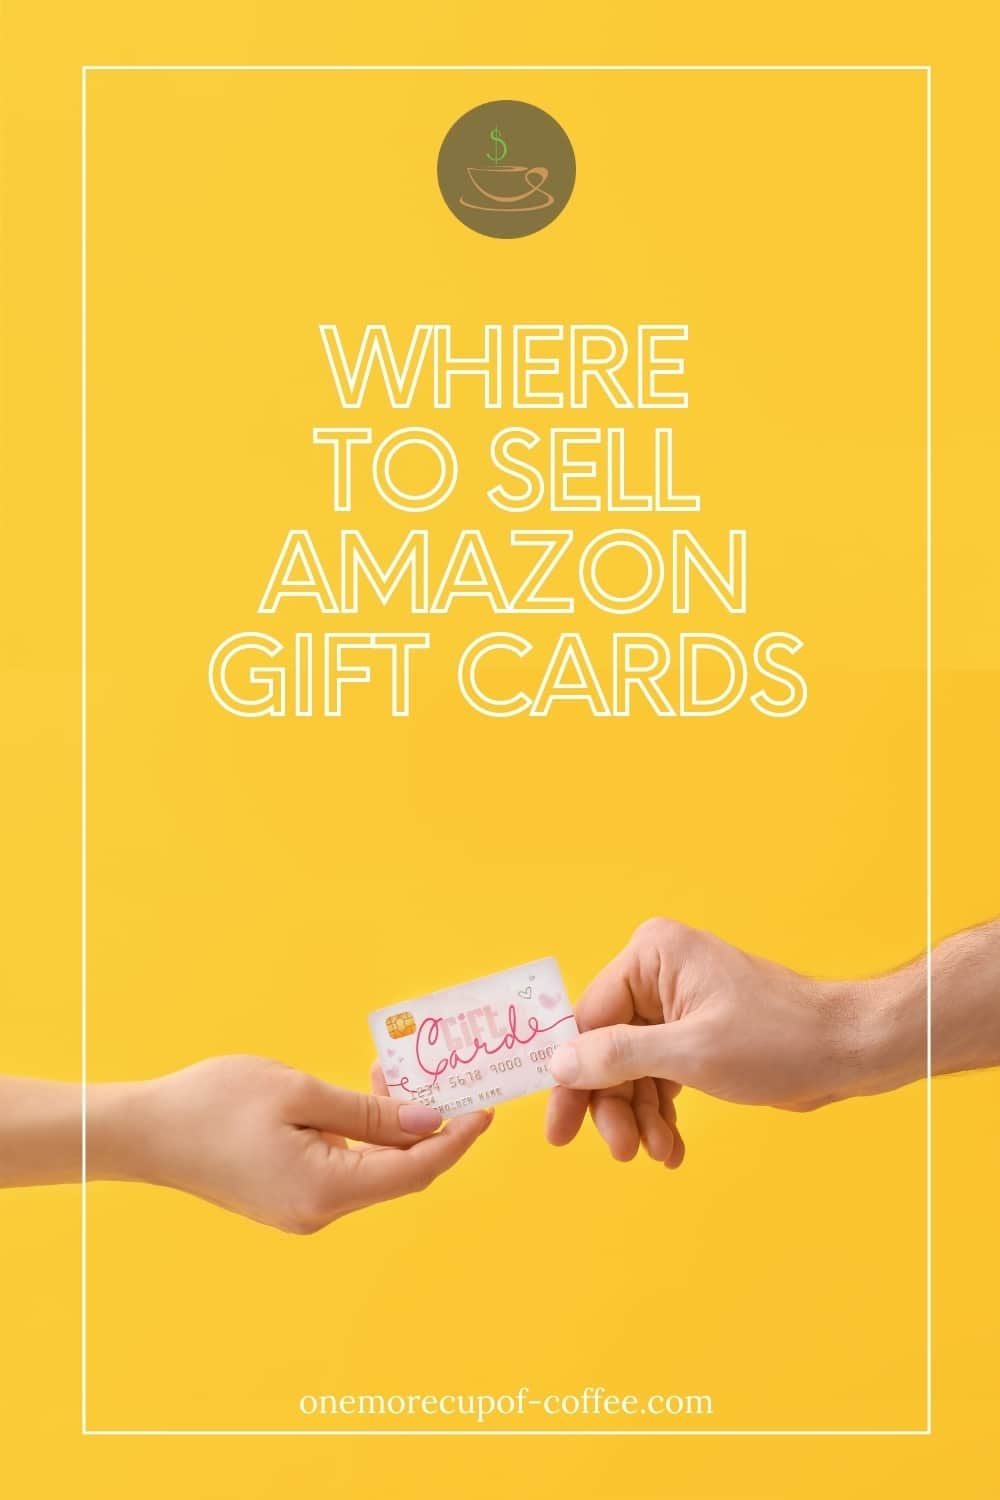 closeup image of two hands holding on to a gift card against a yellow background; with text overlay